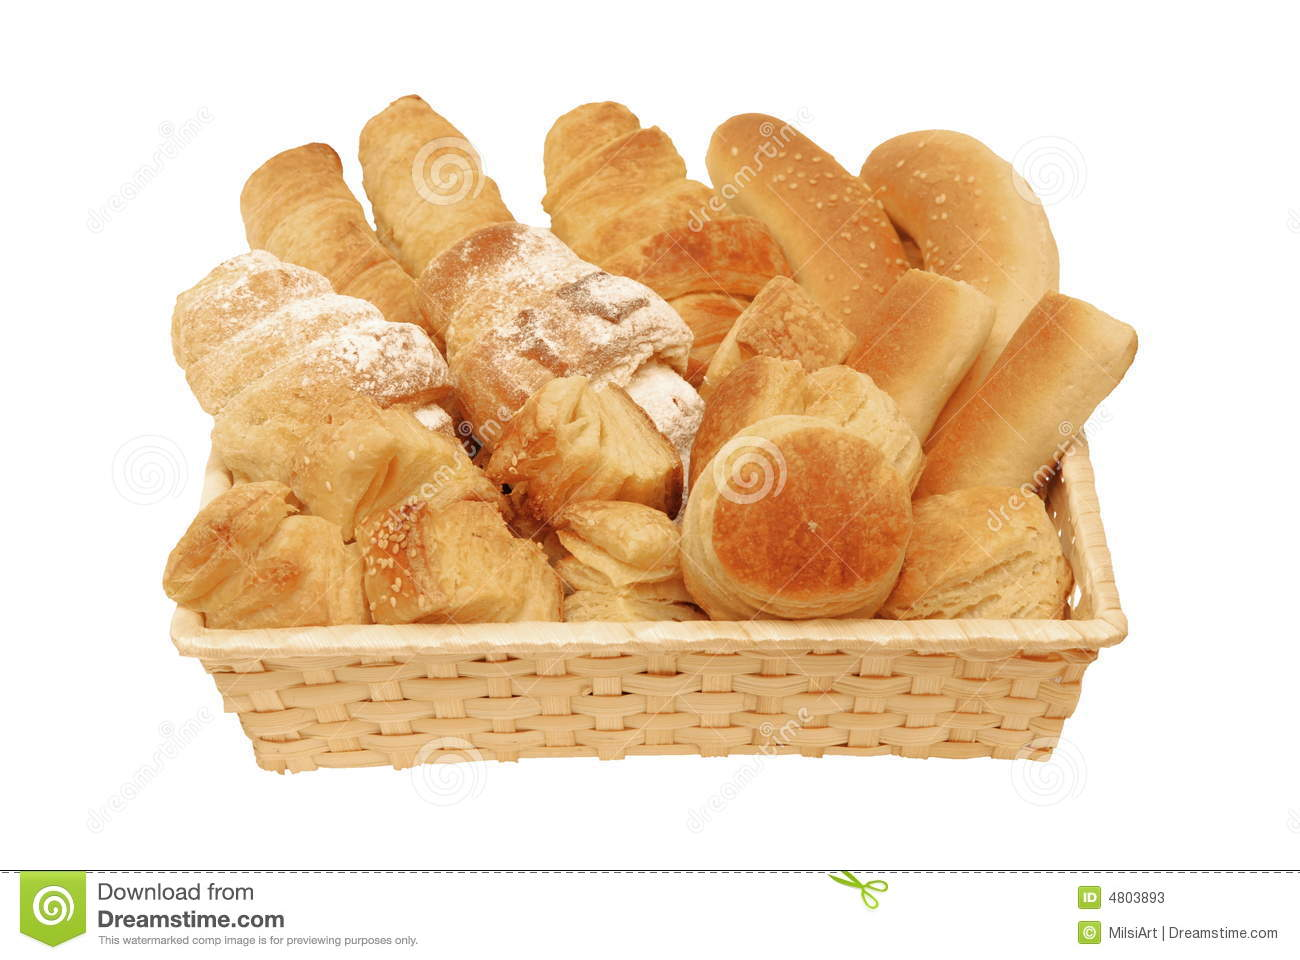 Bread And Pastry Assortment Stock Image - Image of brown ...